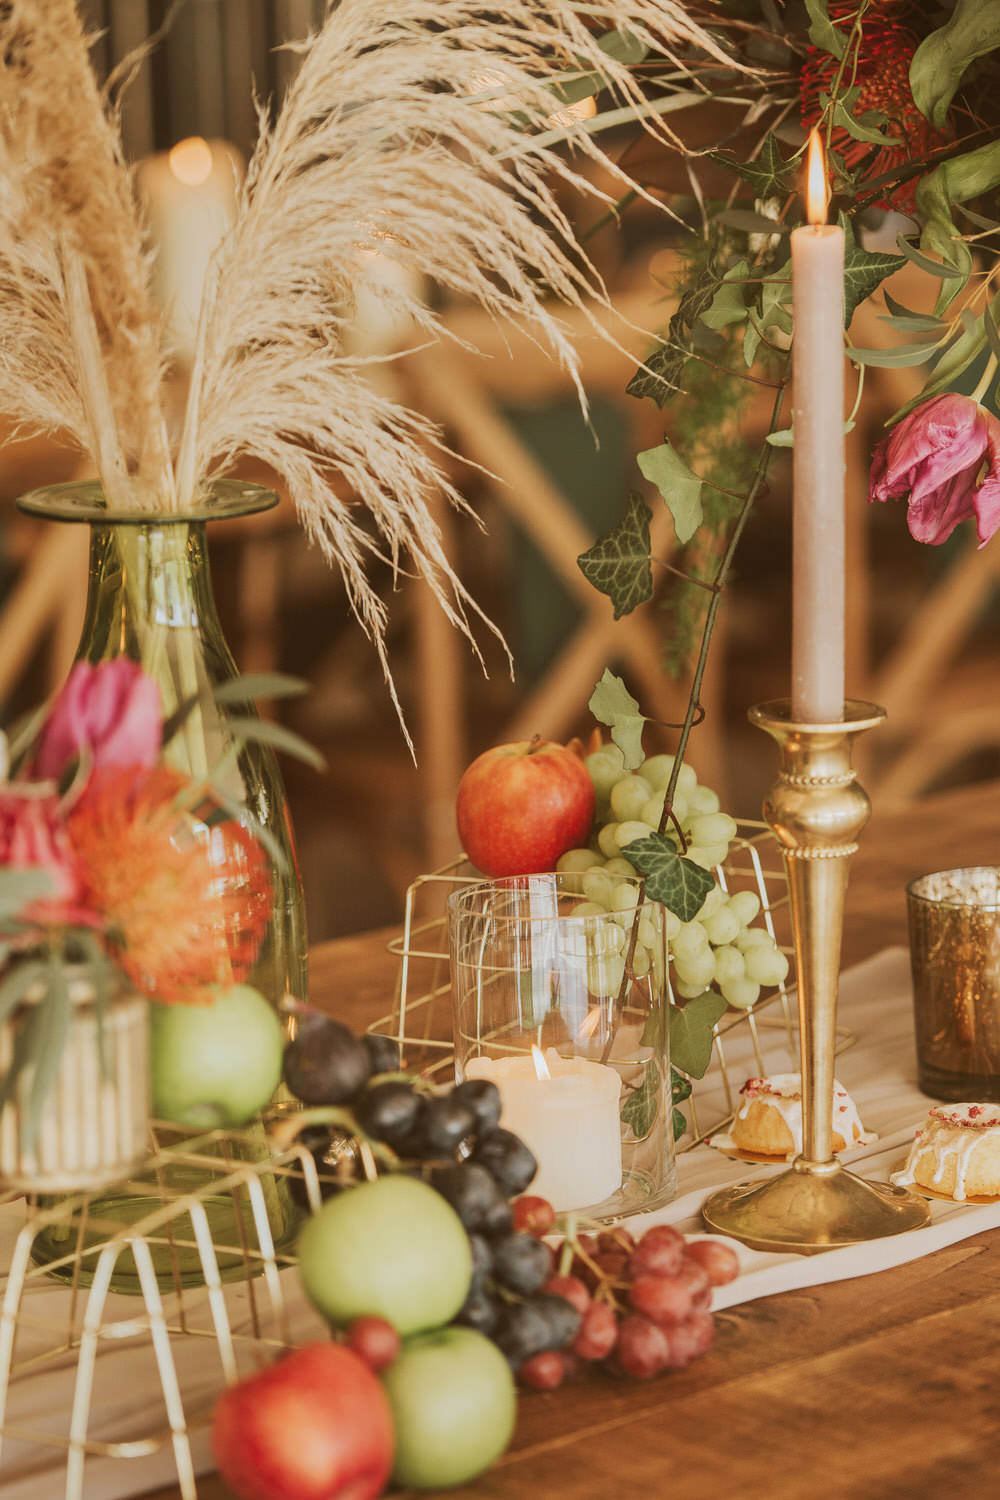 Decor Decoration Table Tablescape Glasses Candles Napkins Cutlery Fruit Green Gold Wedding Ideas Samantha Davis Photography